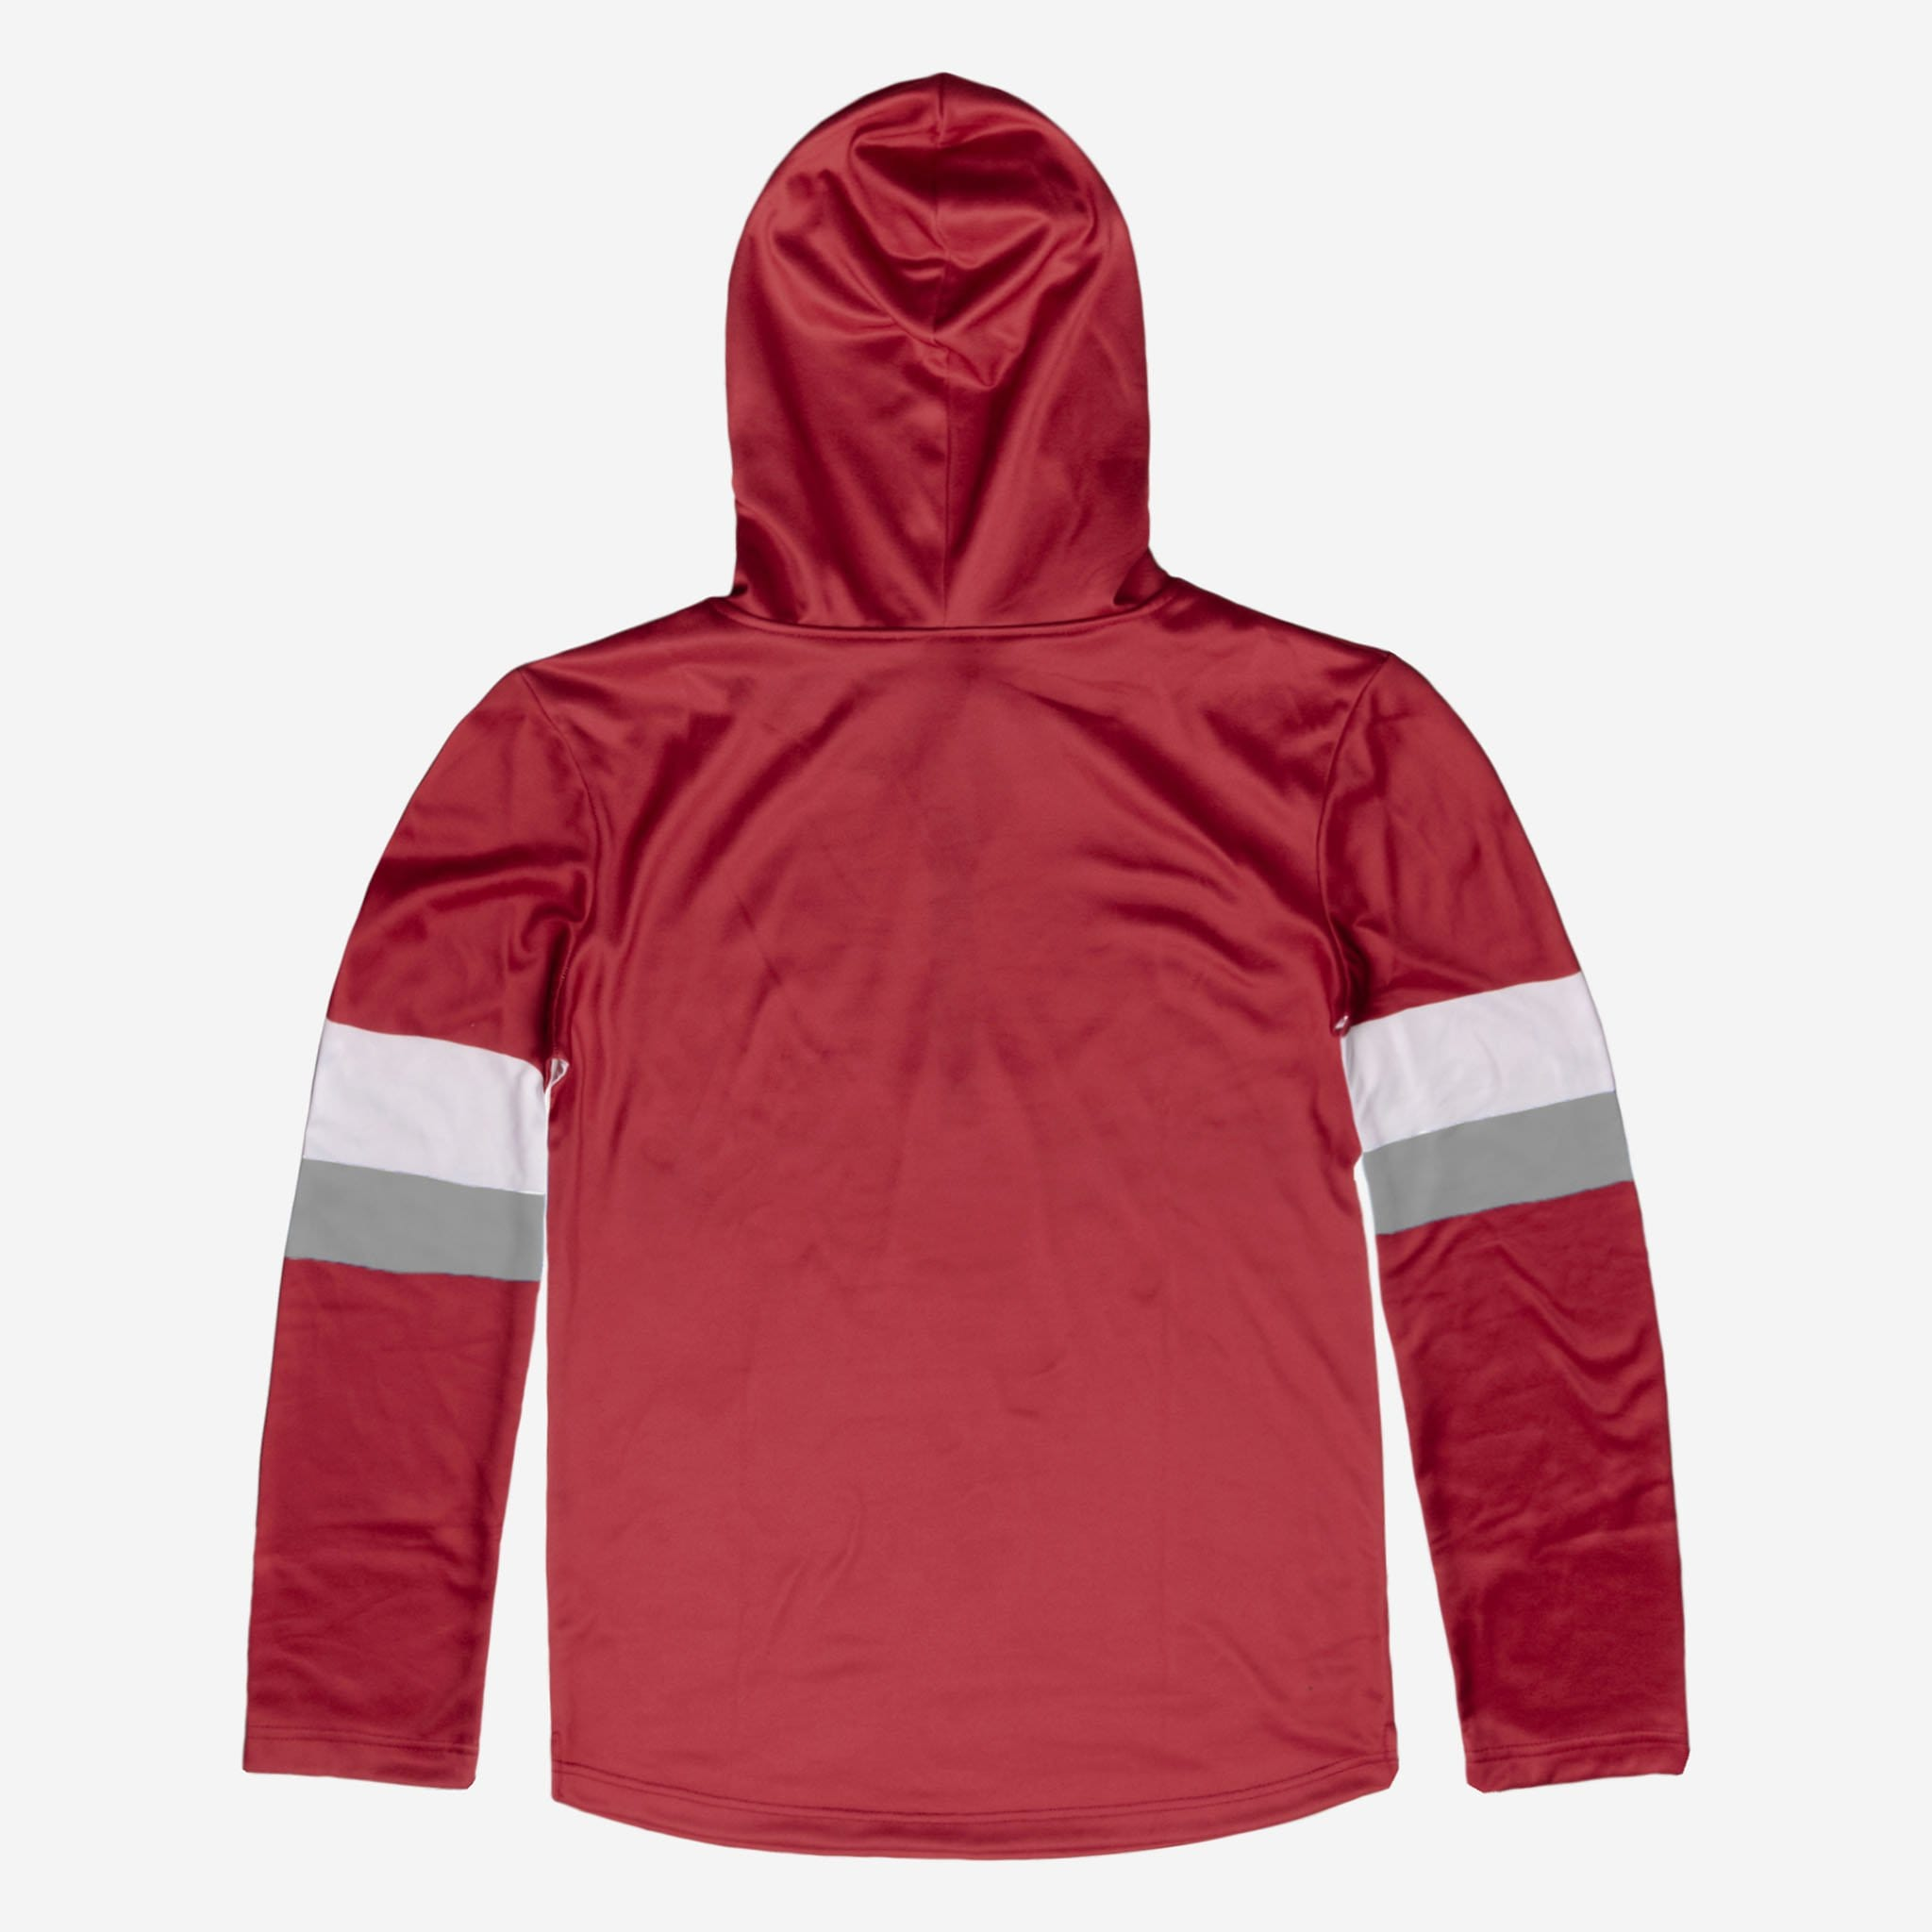 Alabama Crimson Tide Quarter Zip Hoodie